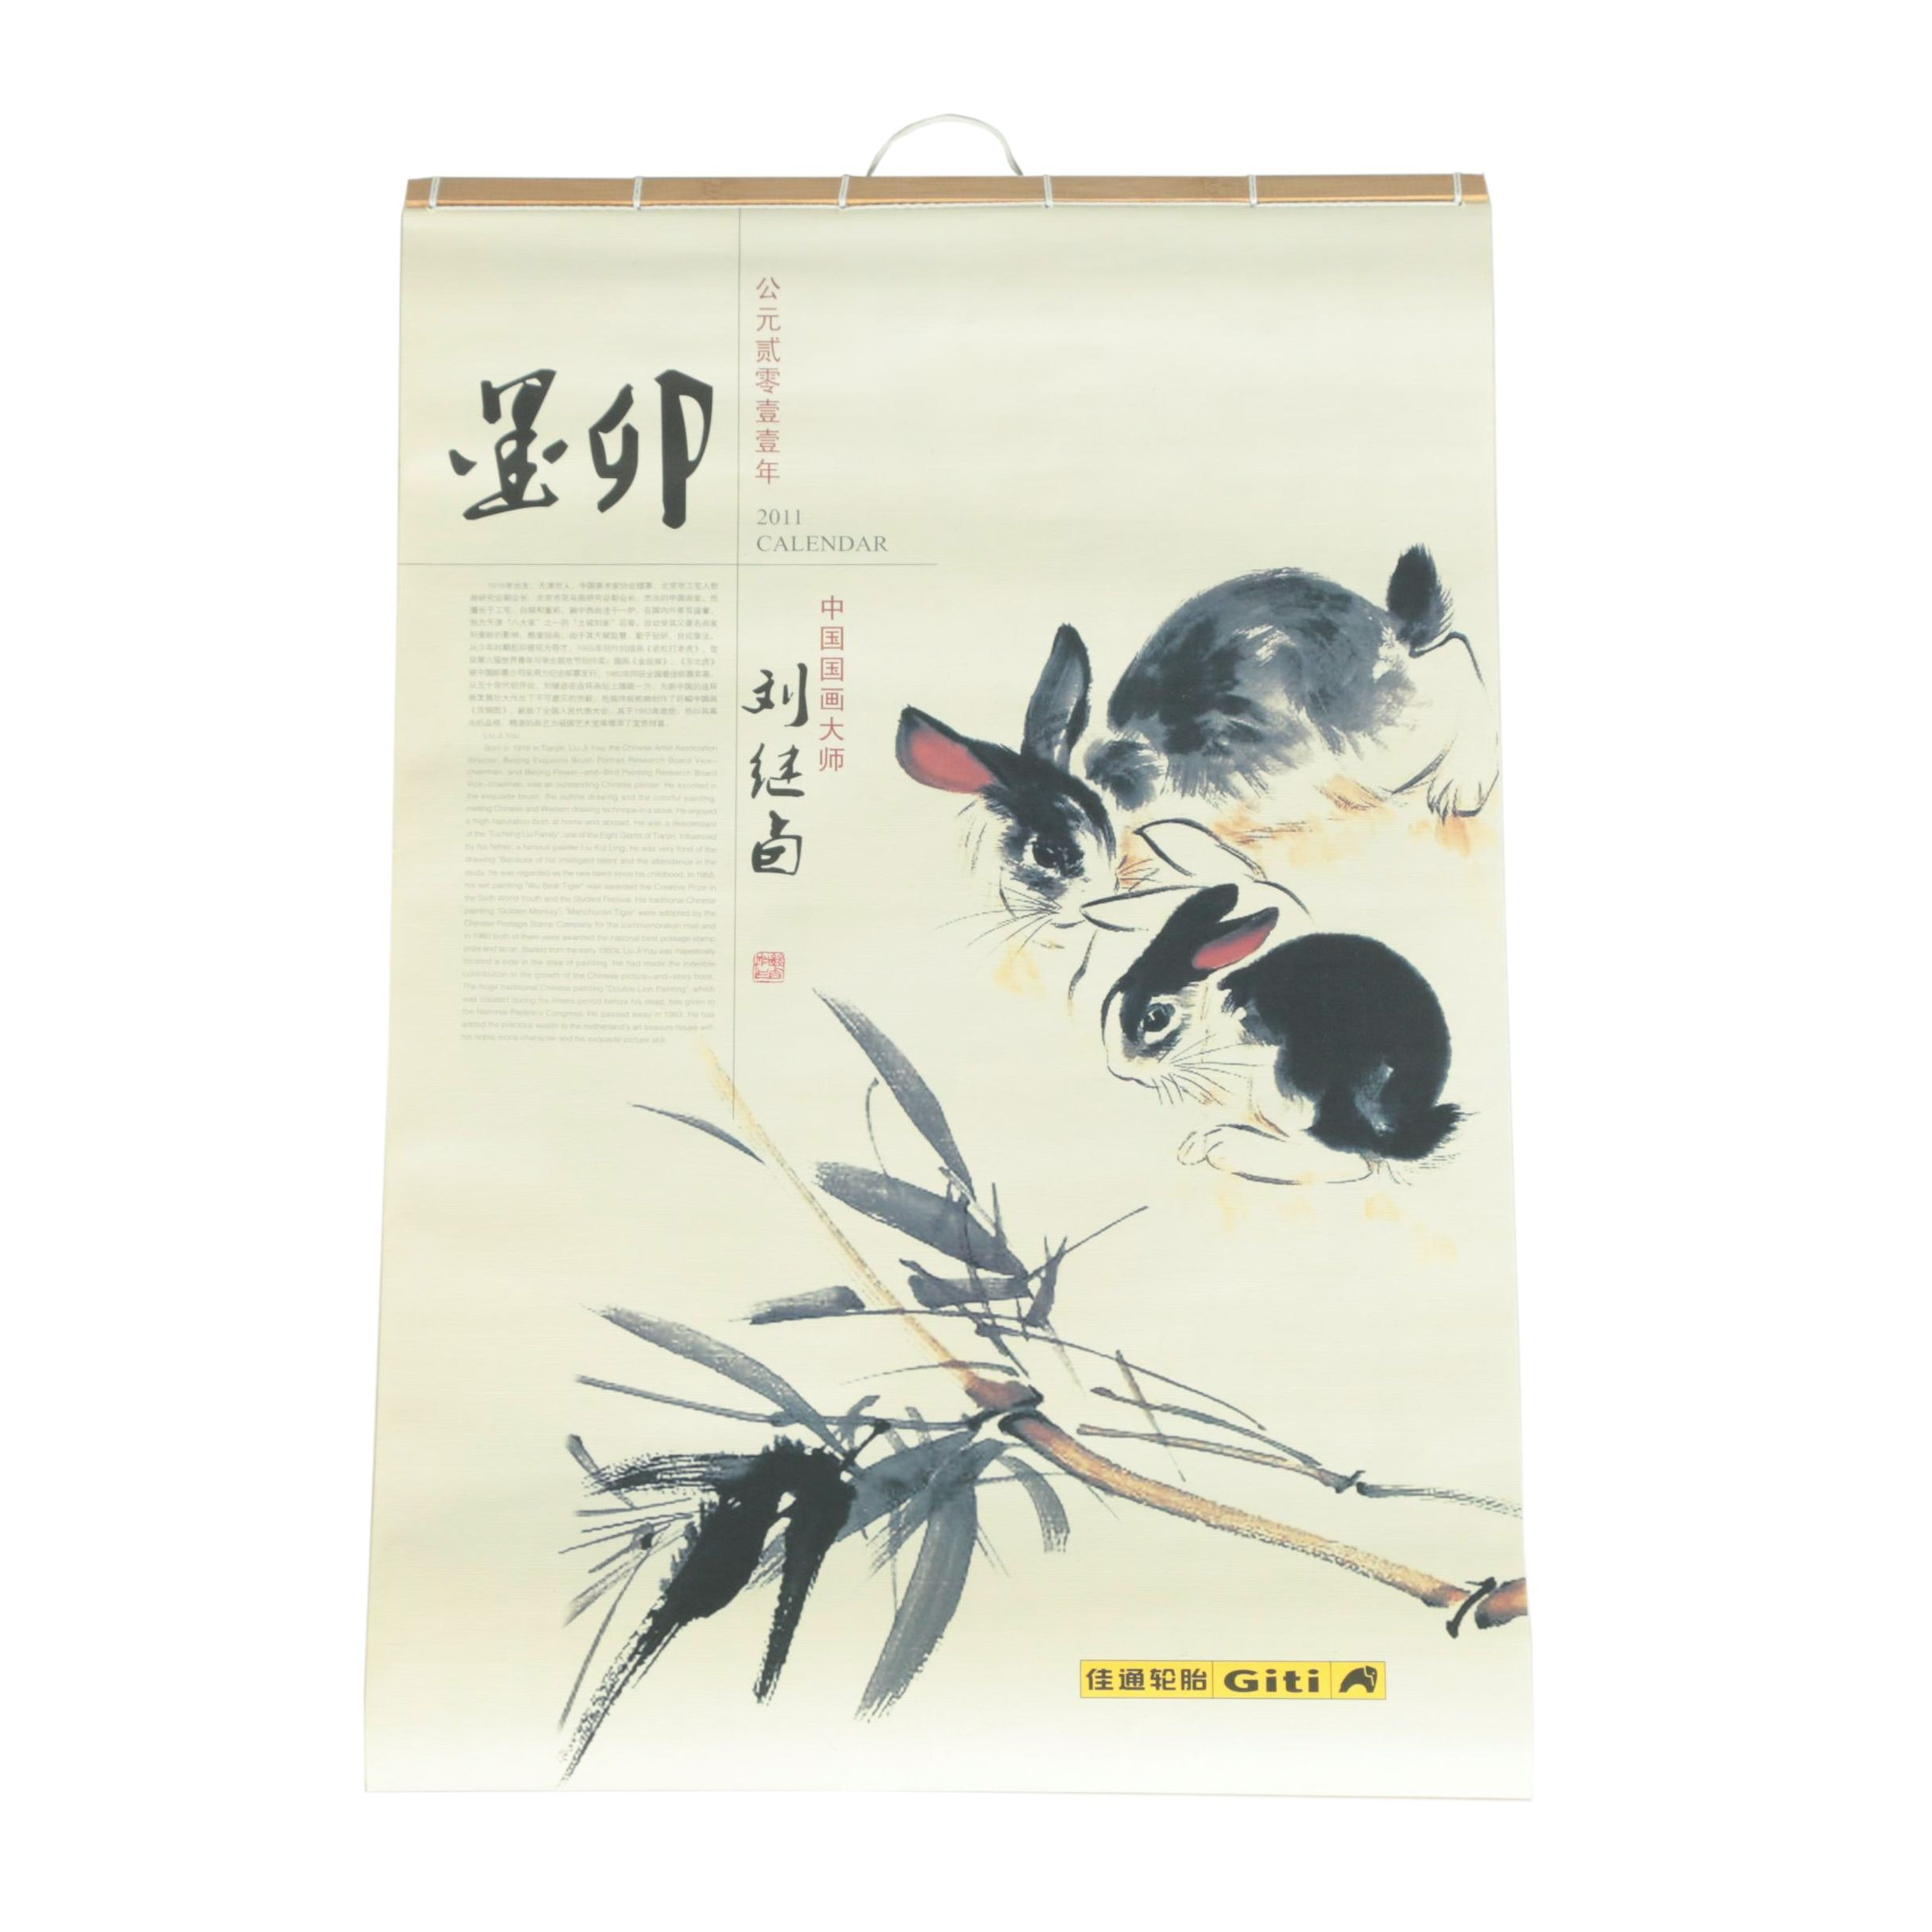 East Asian Style Offset Lithograph Hanging 2011 Calendar